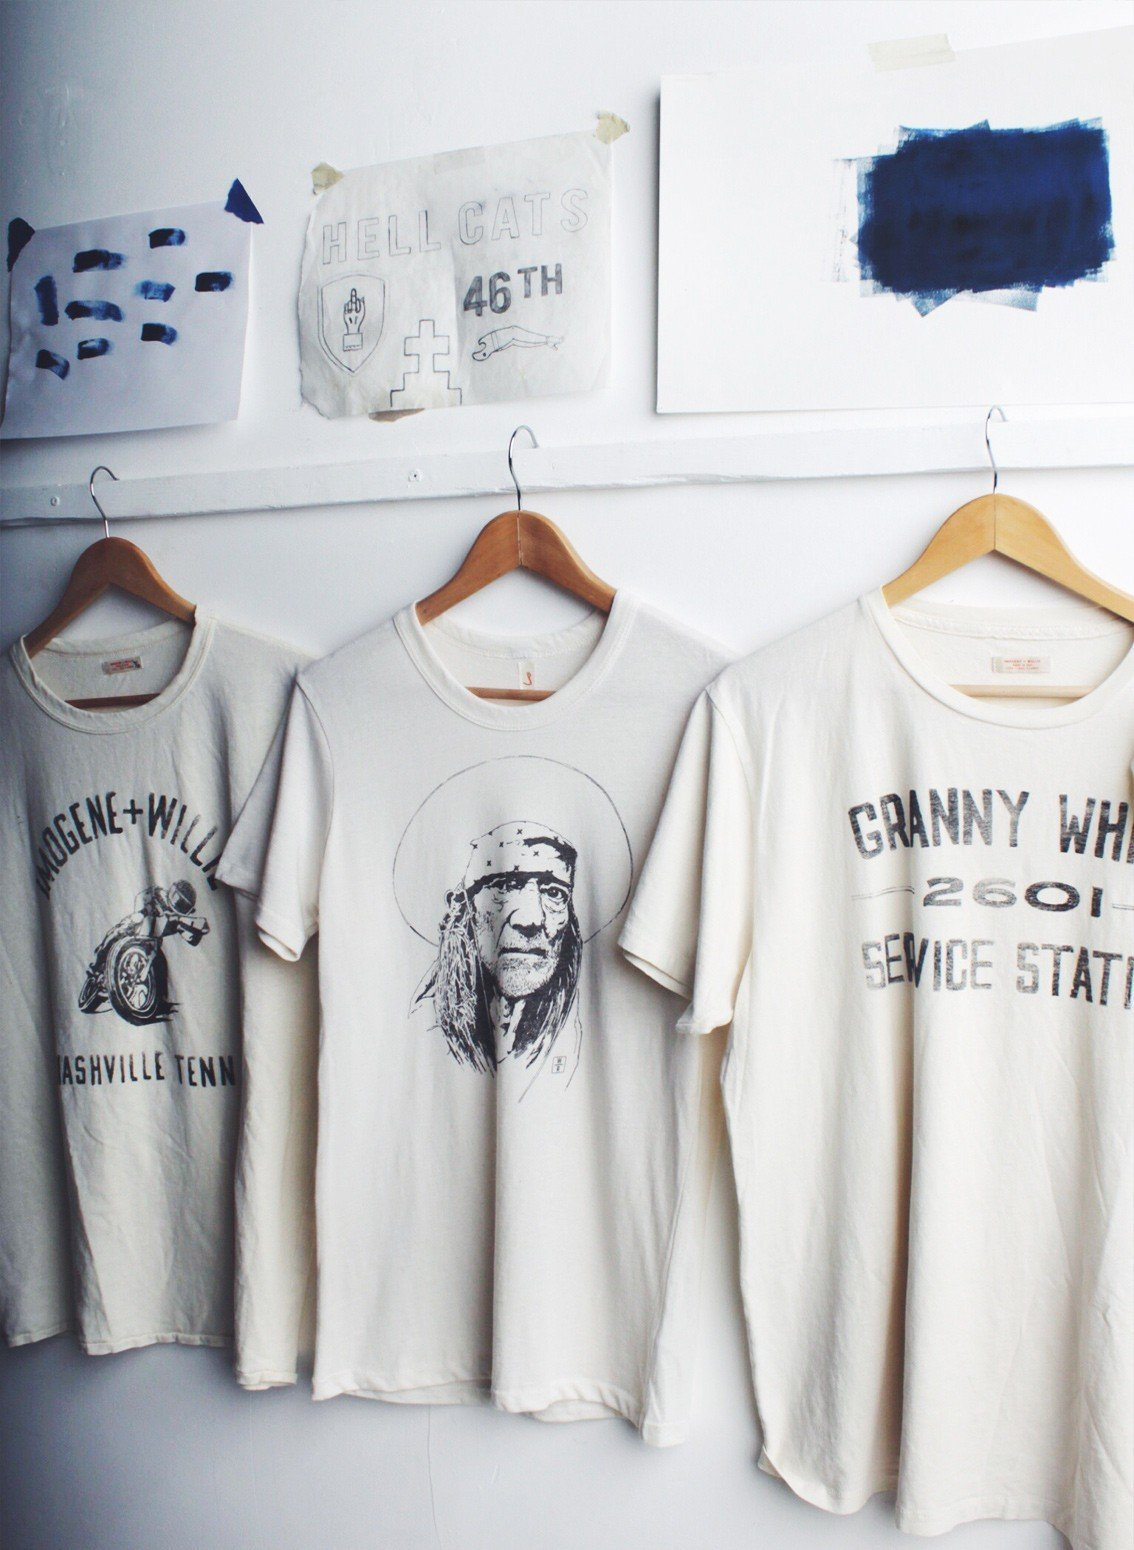 imogene + willie - the willie nelson tee